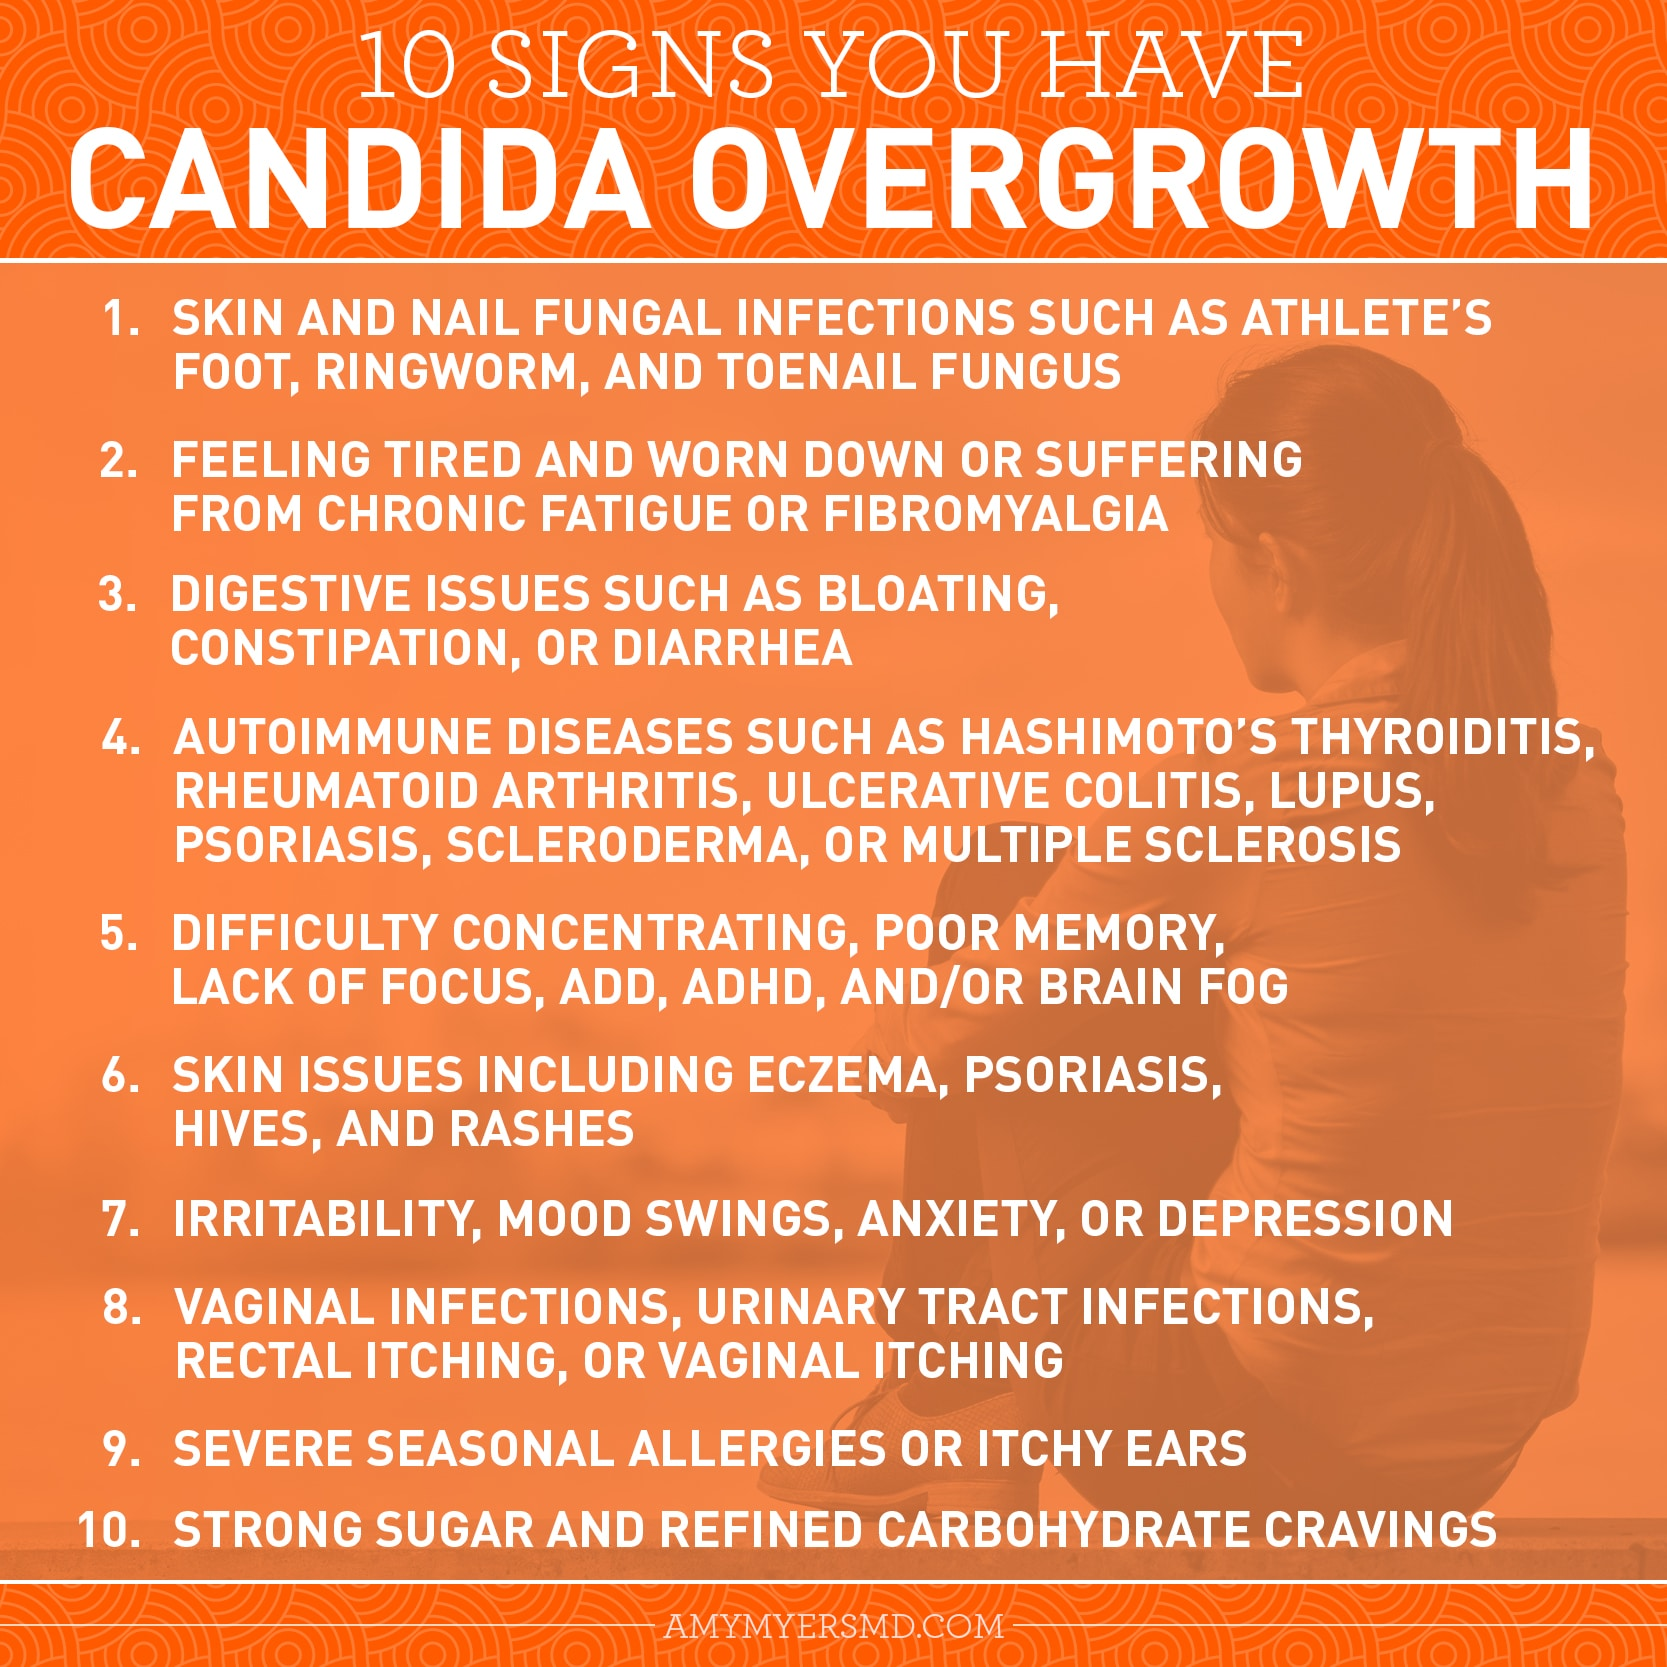 Pleasing 10 Signs You Have Candida Overgrowth How To Eliminate It Customarchery Wood Chair Design Ideas Customarcherynet